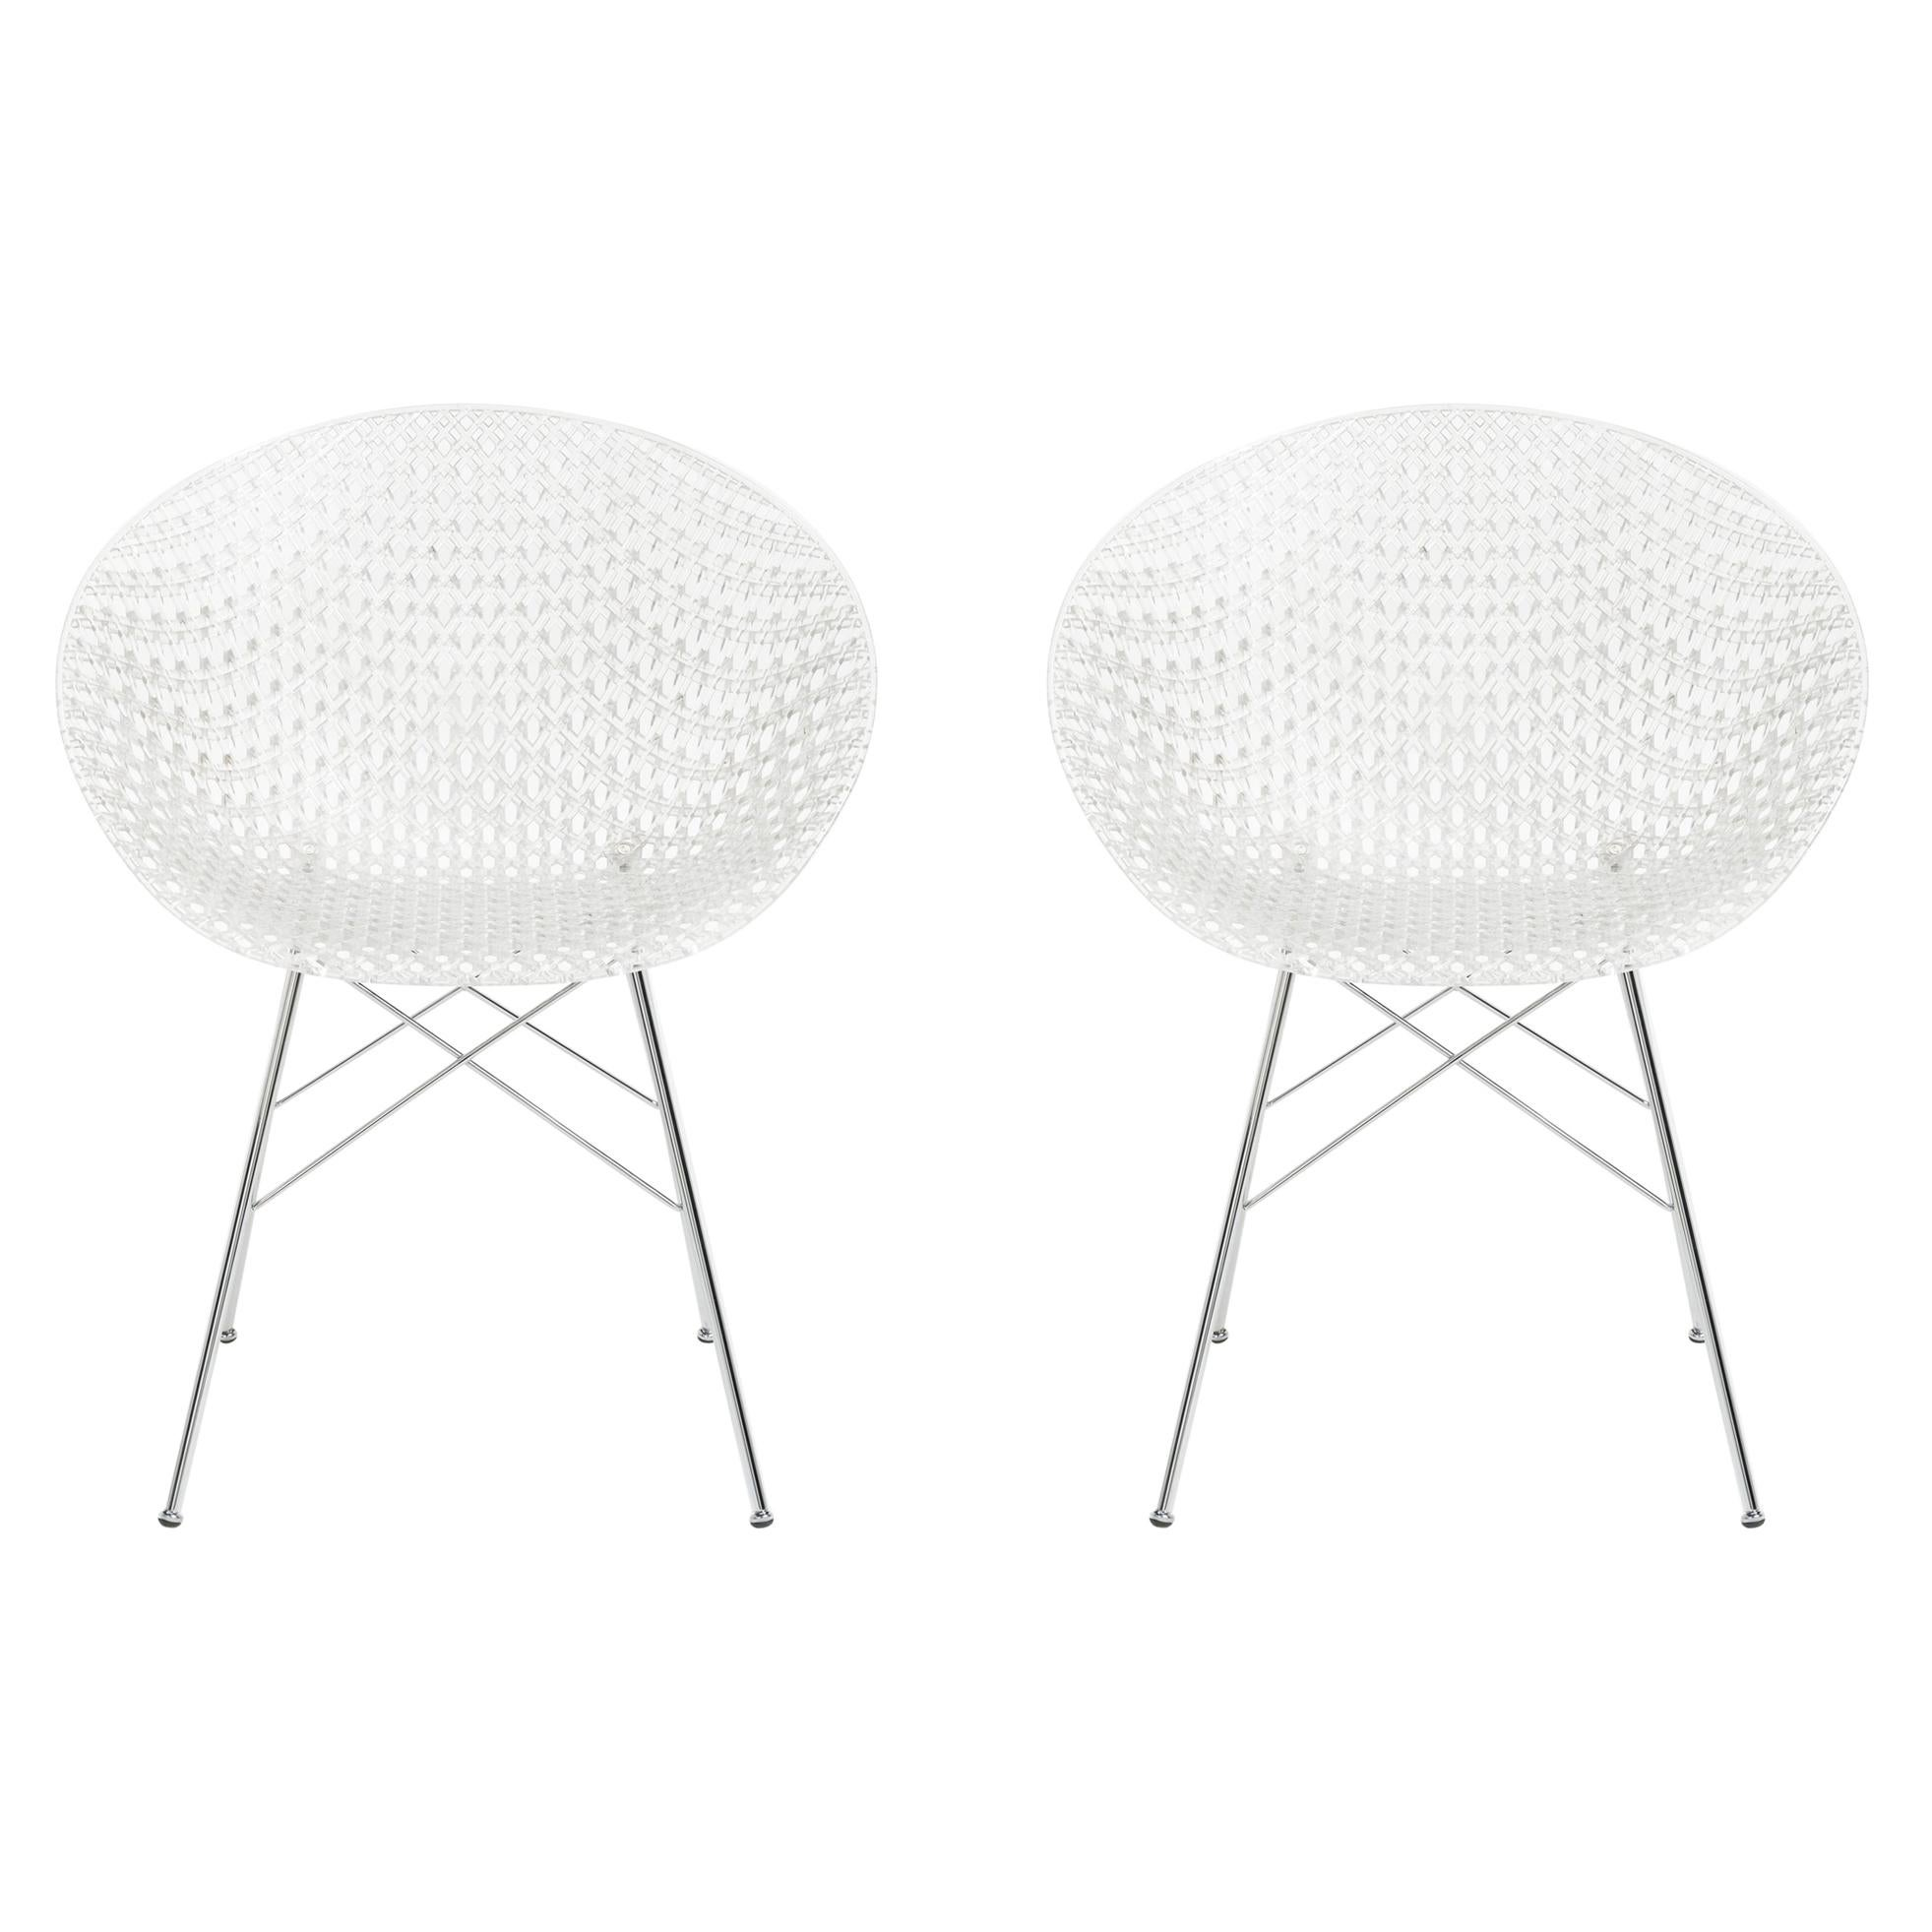 Set of 2 Kartell Smatrik Chair in Crystal with Chrome Legs by Tokujin Yoshioka